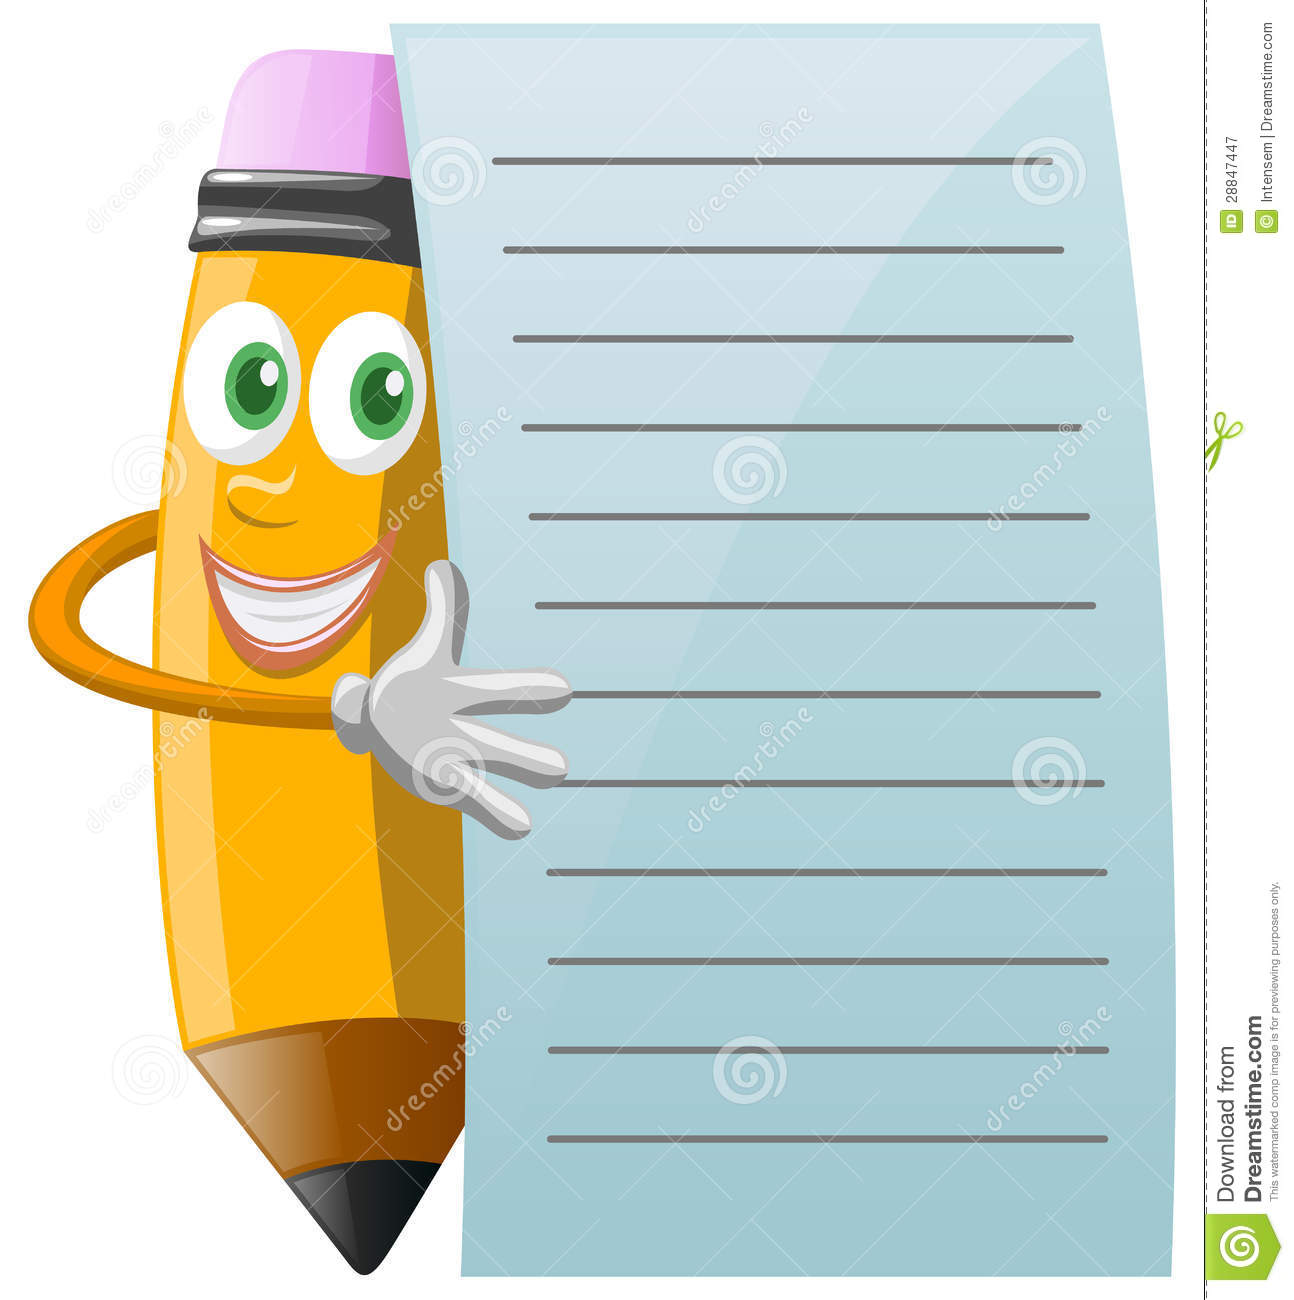 Smiling Fun Pencil Character Standing Be-Smiling Fun Pencil Character Standing Behind Notepaper And Holding It-18